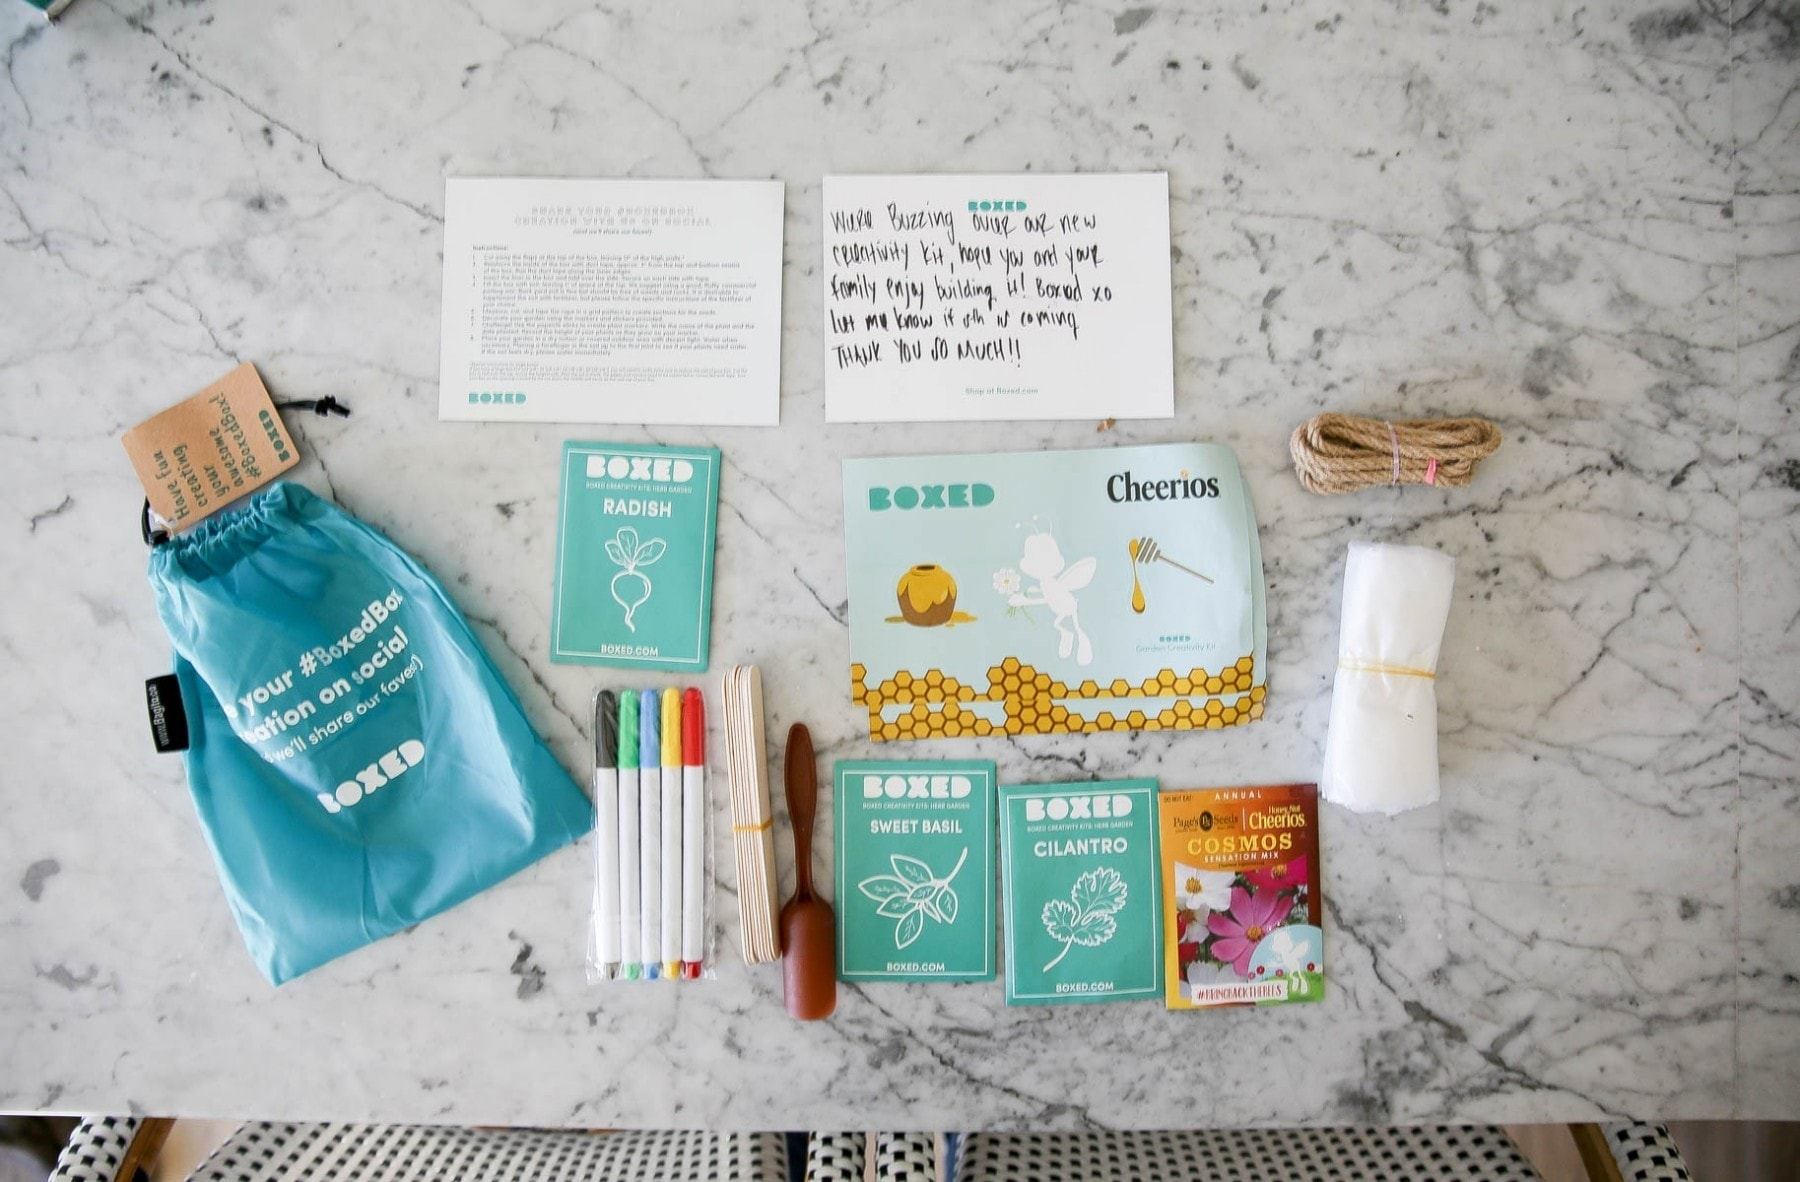 Free creativity kit from Boxed and General Mills' Bring Back the Bees campaign to decorate your mini bee sanctuary